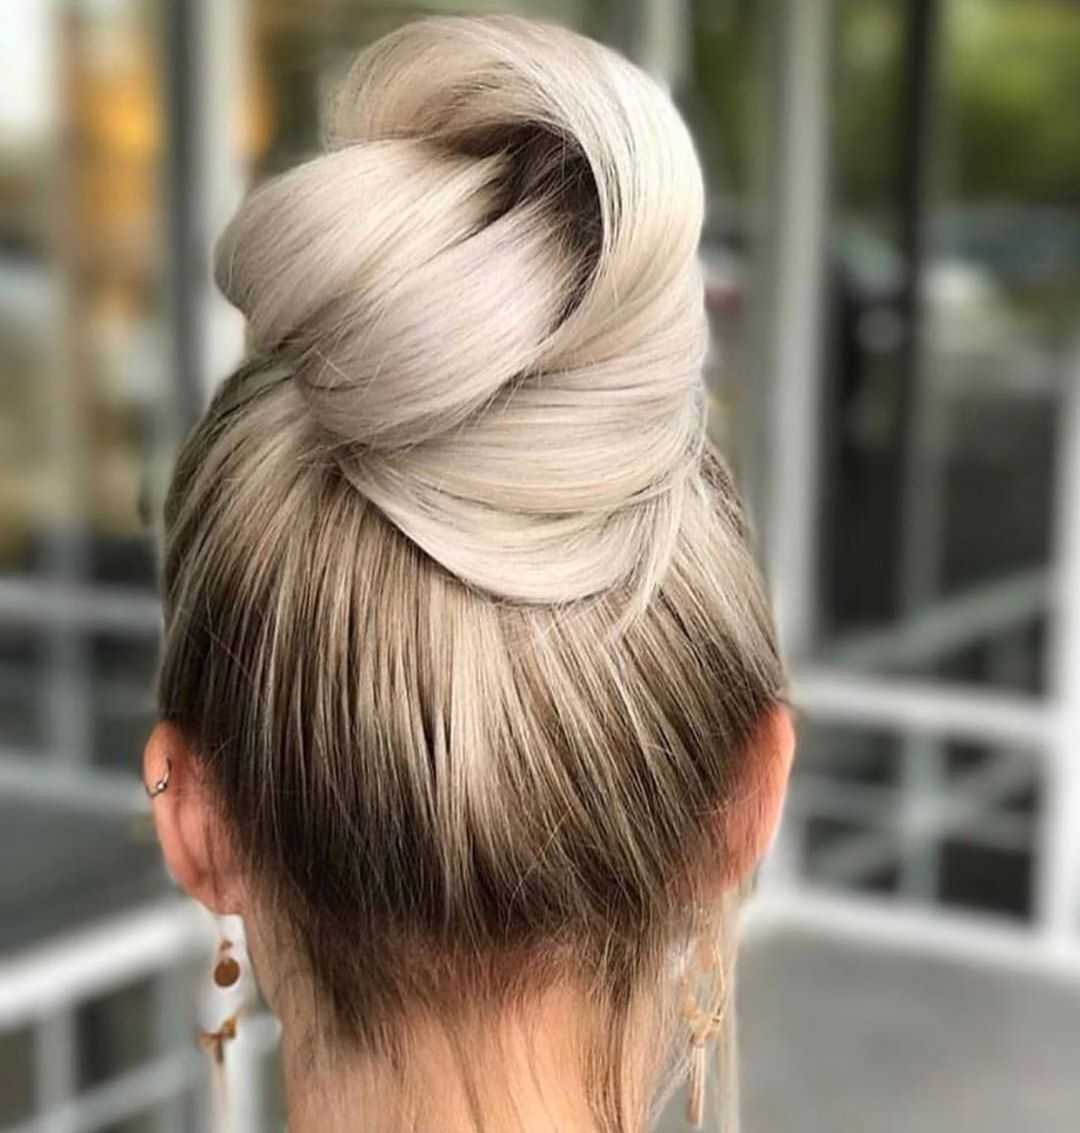 Wedding Hairstyle Trends 2019: 20 Stylish Updo Hairstyles That You Will Want To Try